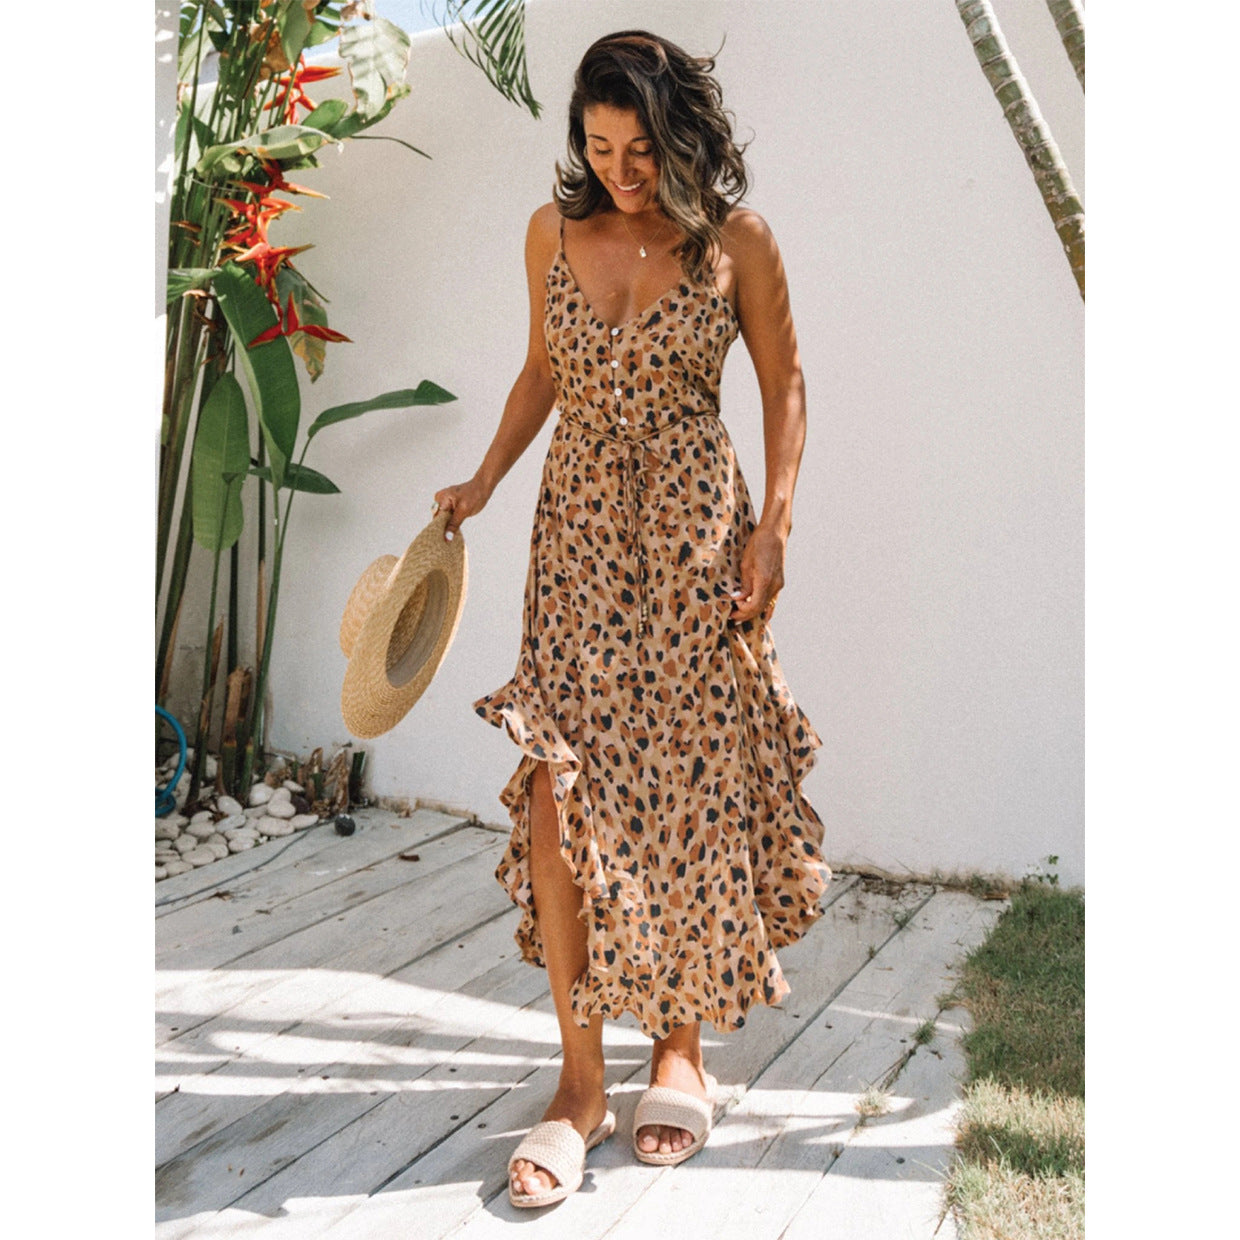 Leopard Print Single-row Buckle Flounced Halter Dresses